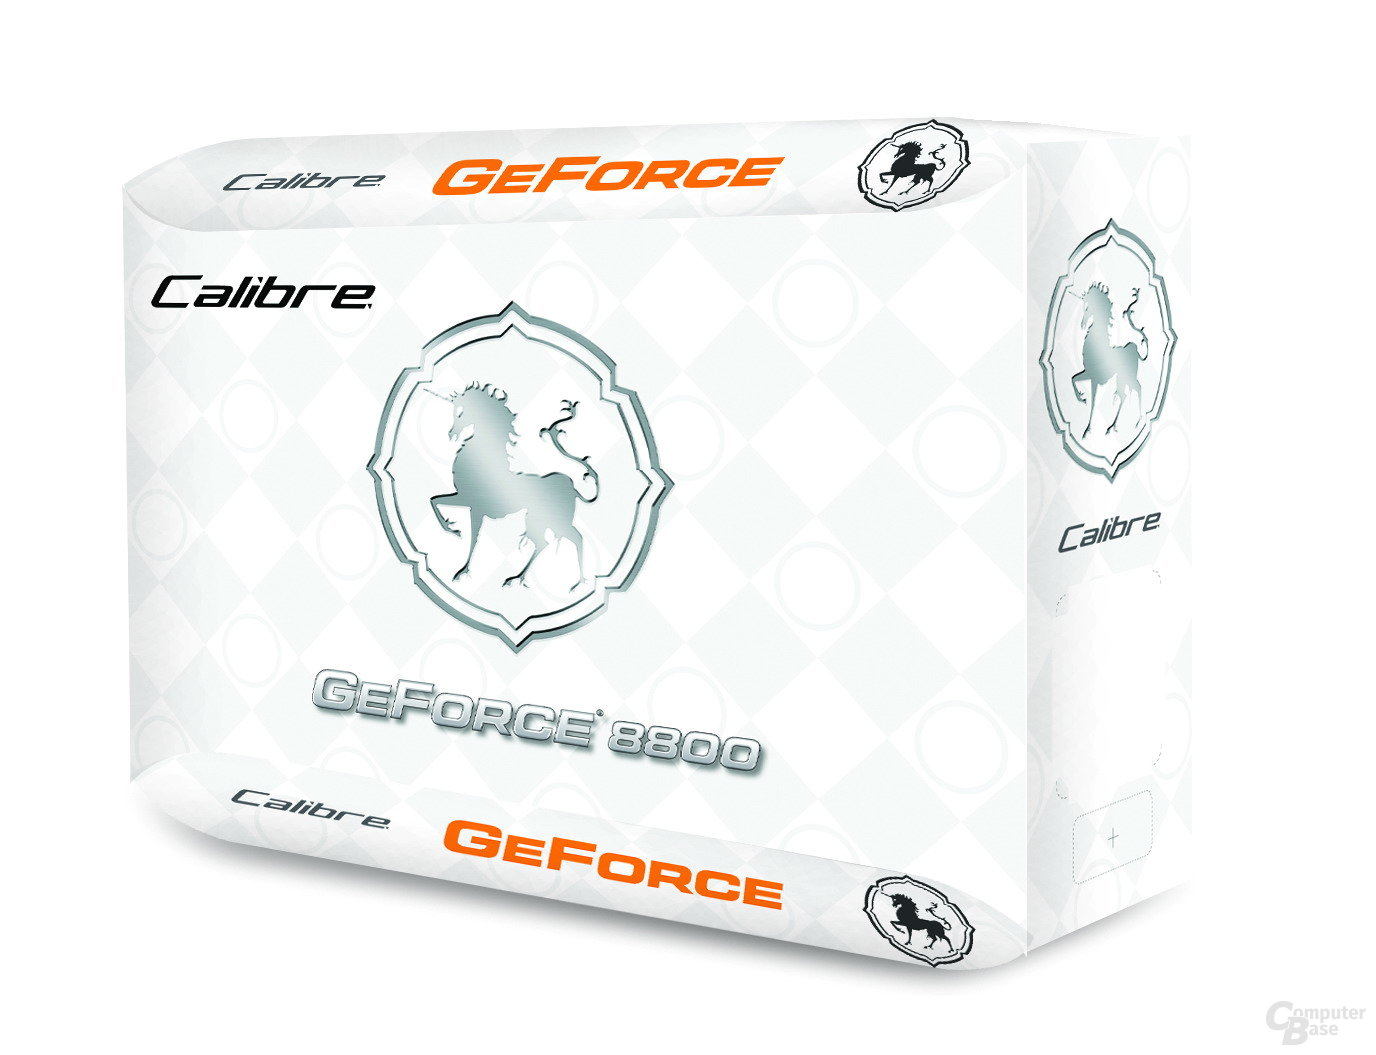 Calibre GeForce 8800 Box